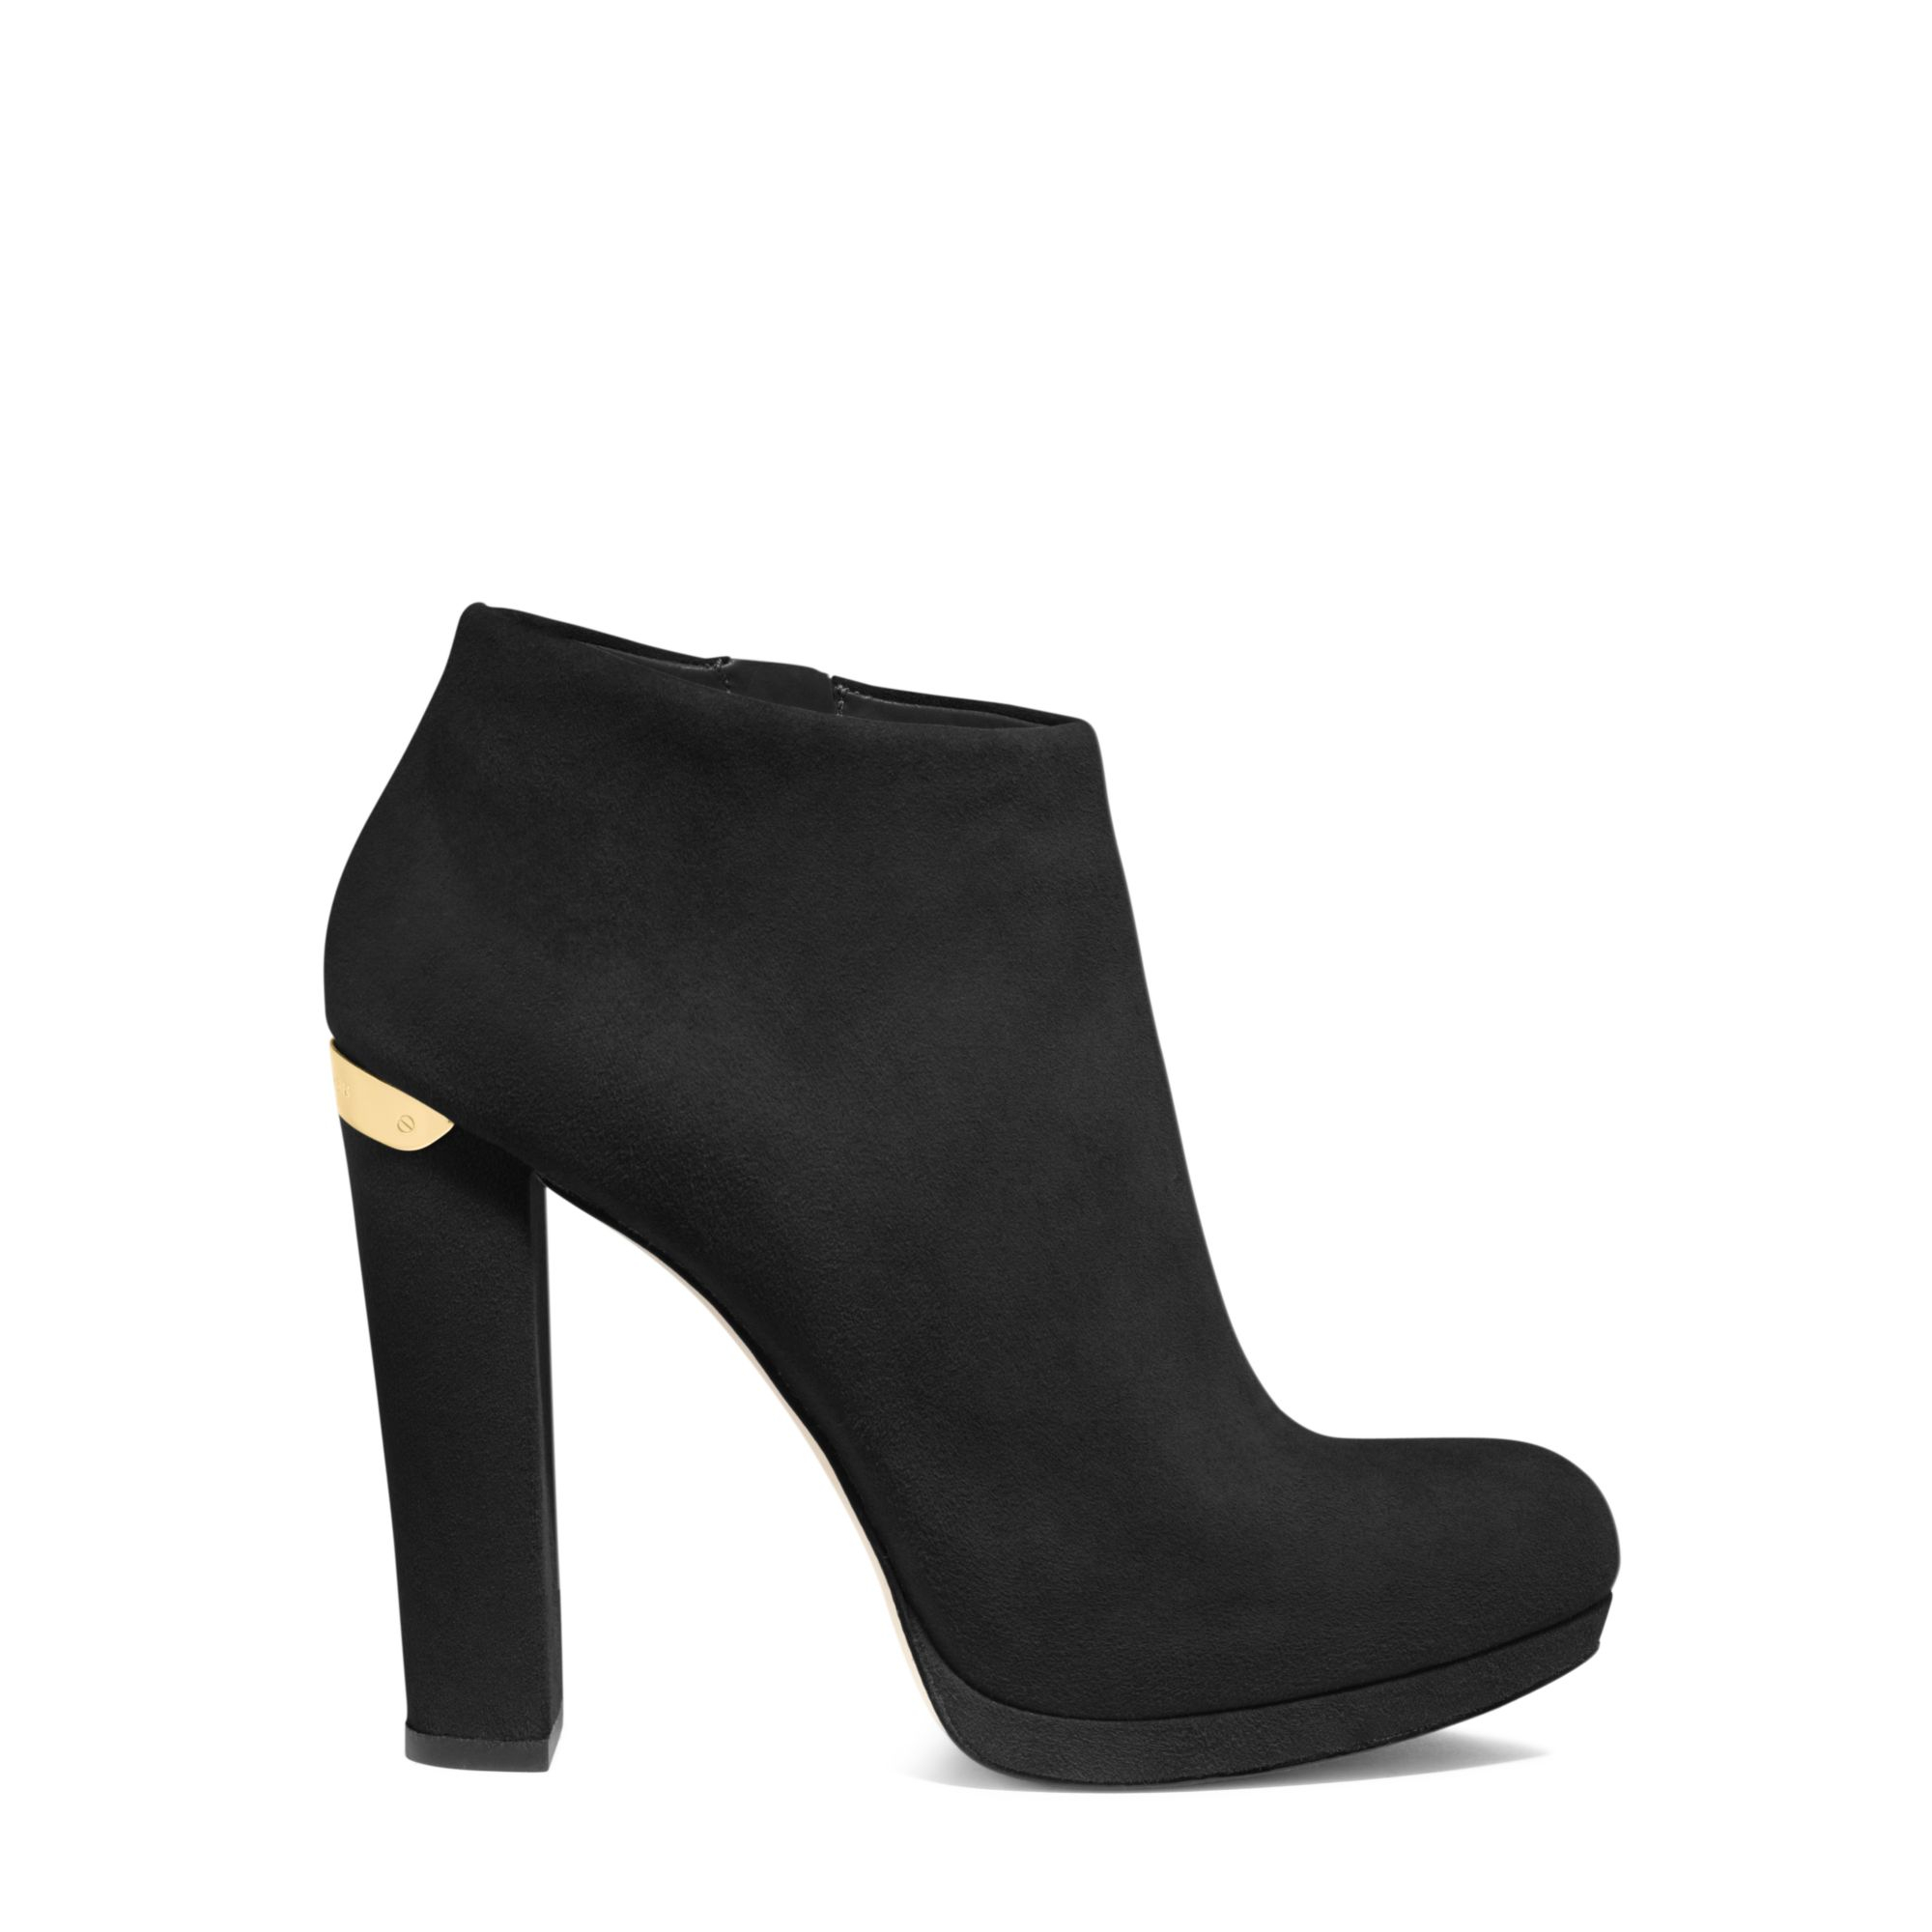 fe56020c7113d Michael Kors Haven Suede Ankle Boot in Black - Lyst